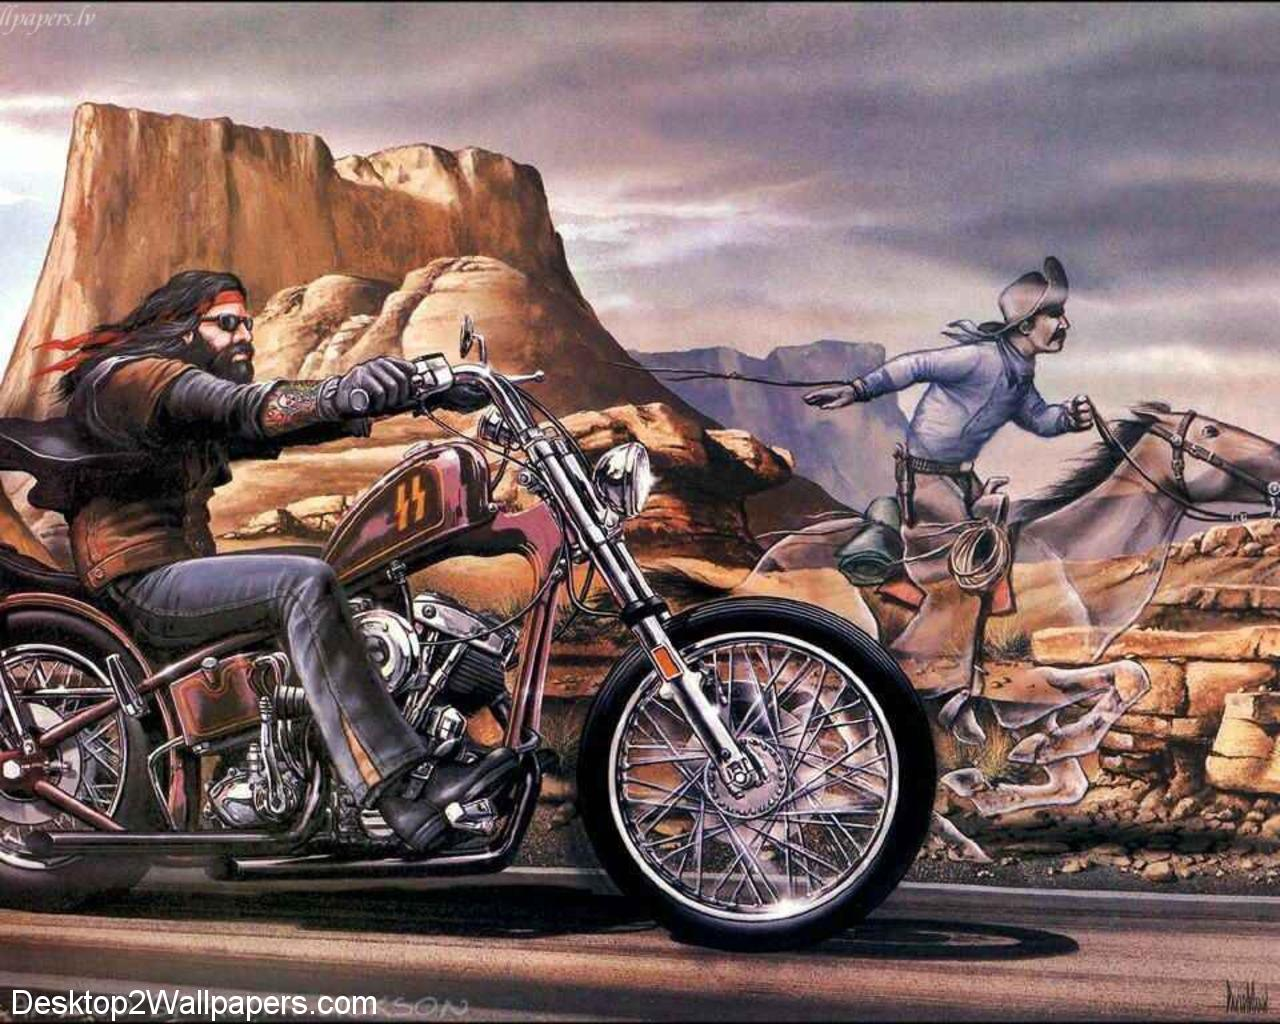 Biker Wallpapers - Wallpaper Cave